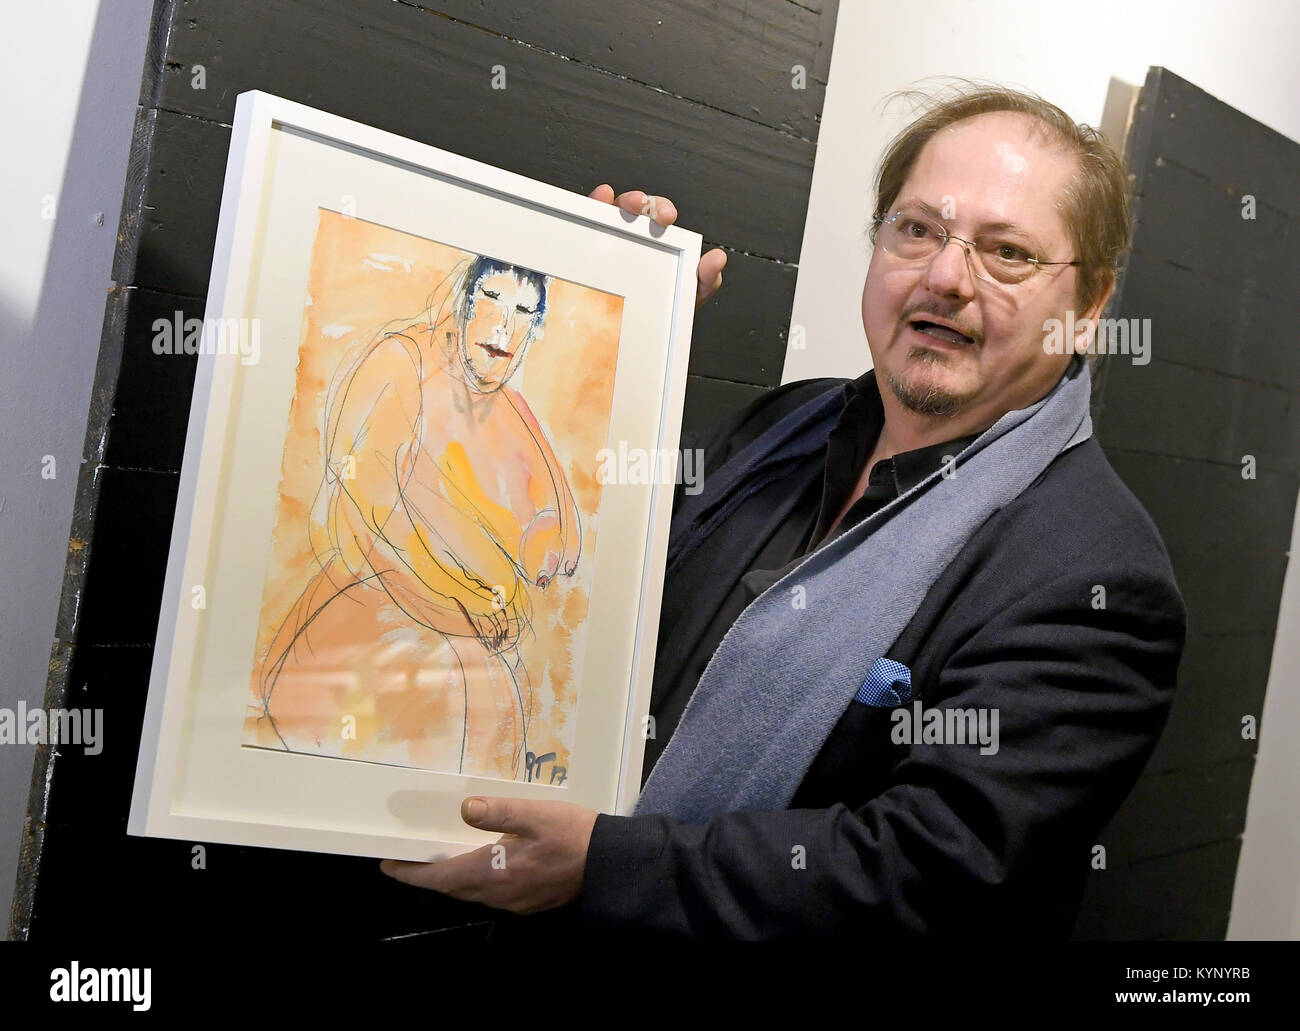 Hanover, Germany. 15th Jan, 2018. Actor Juergen Tarrach presents his painting 'Die dicke maennerfressende Chinesin Stock Photo